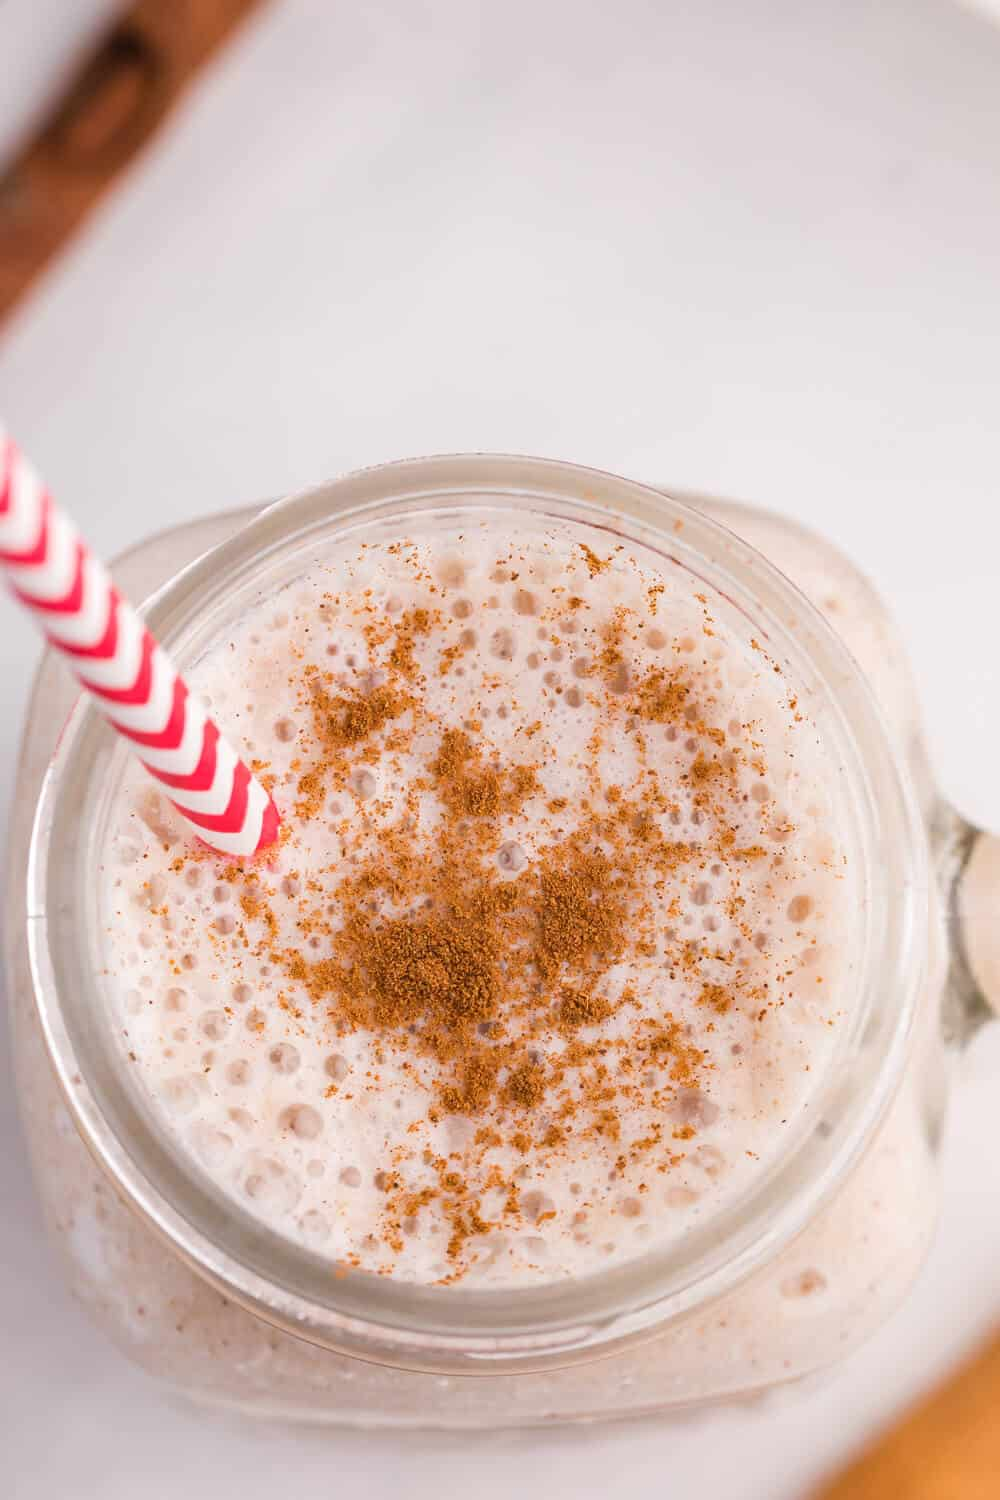 Apple Spice Smoothie - The secret ingredient in this thick and delicious smoothie is oats! A great way to add some fibre to your day, and it tastes amazing.